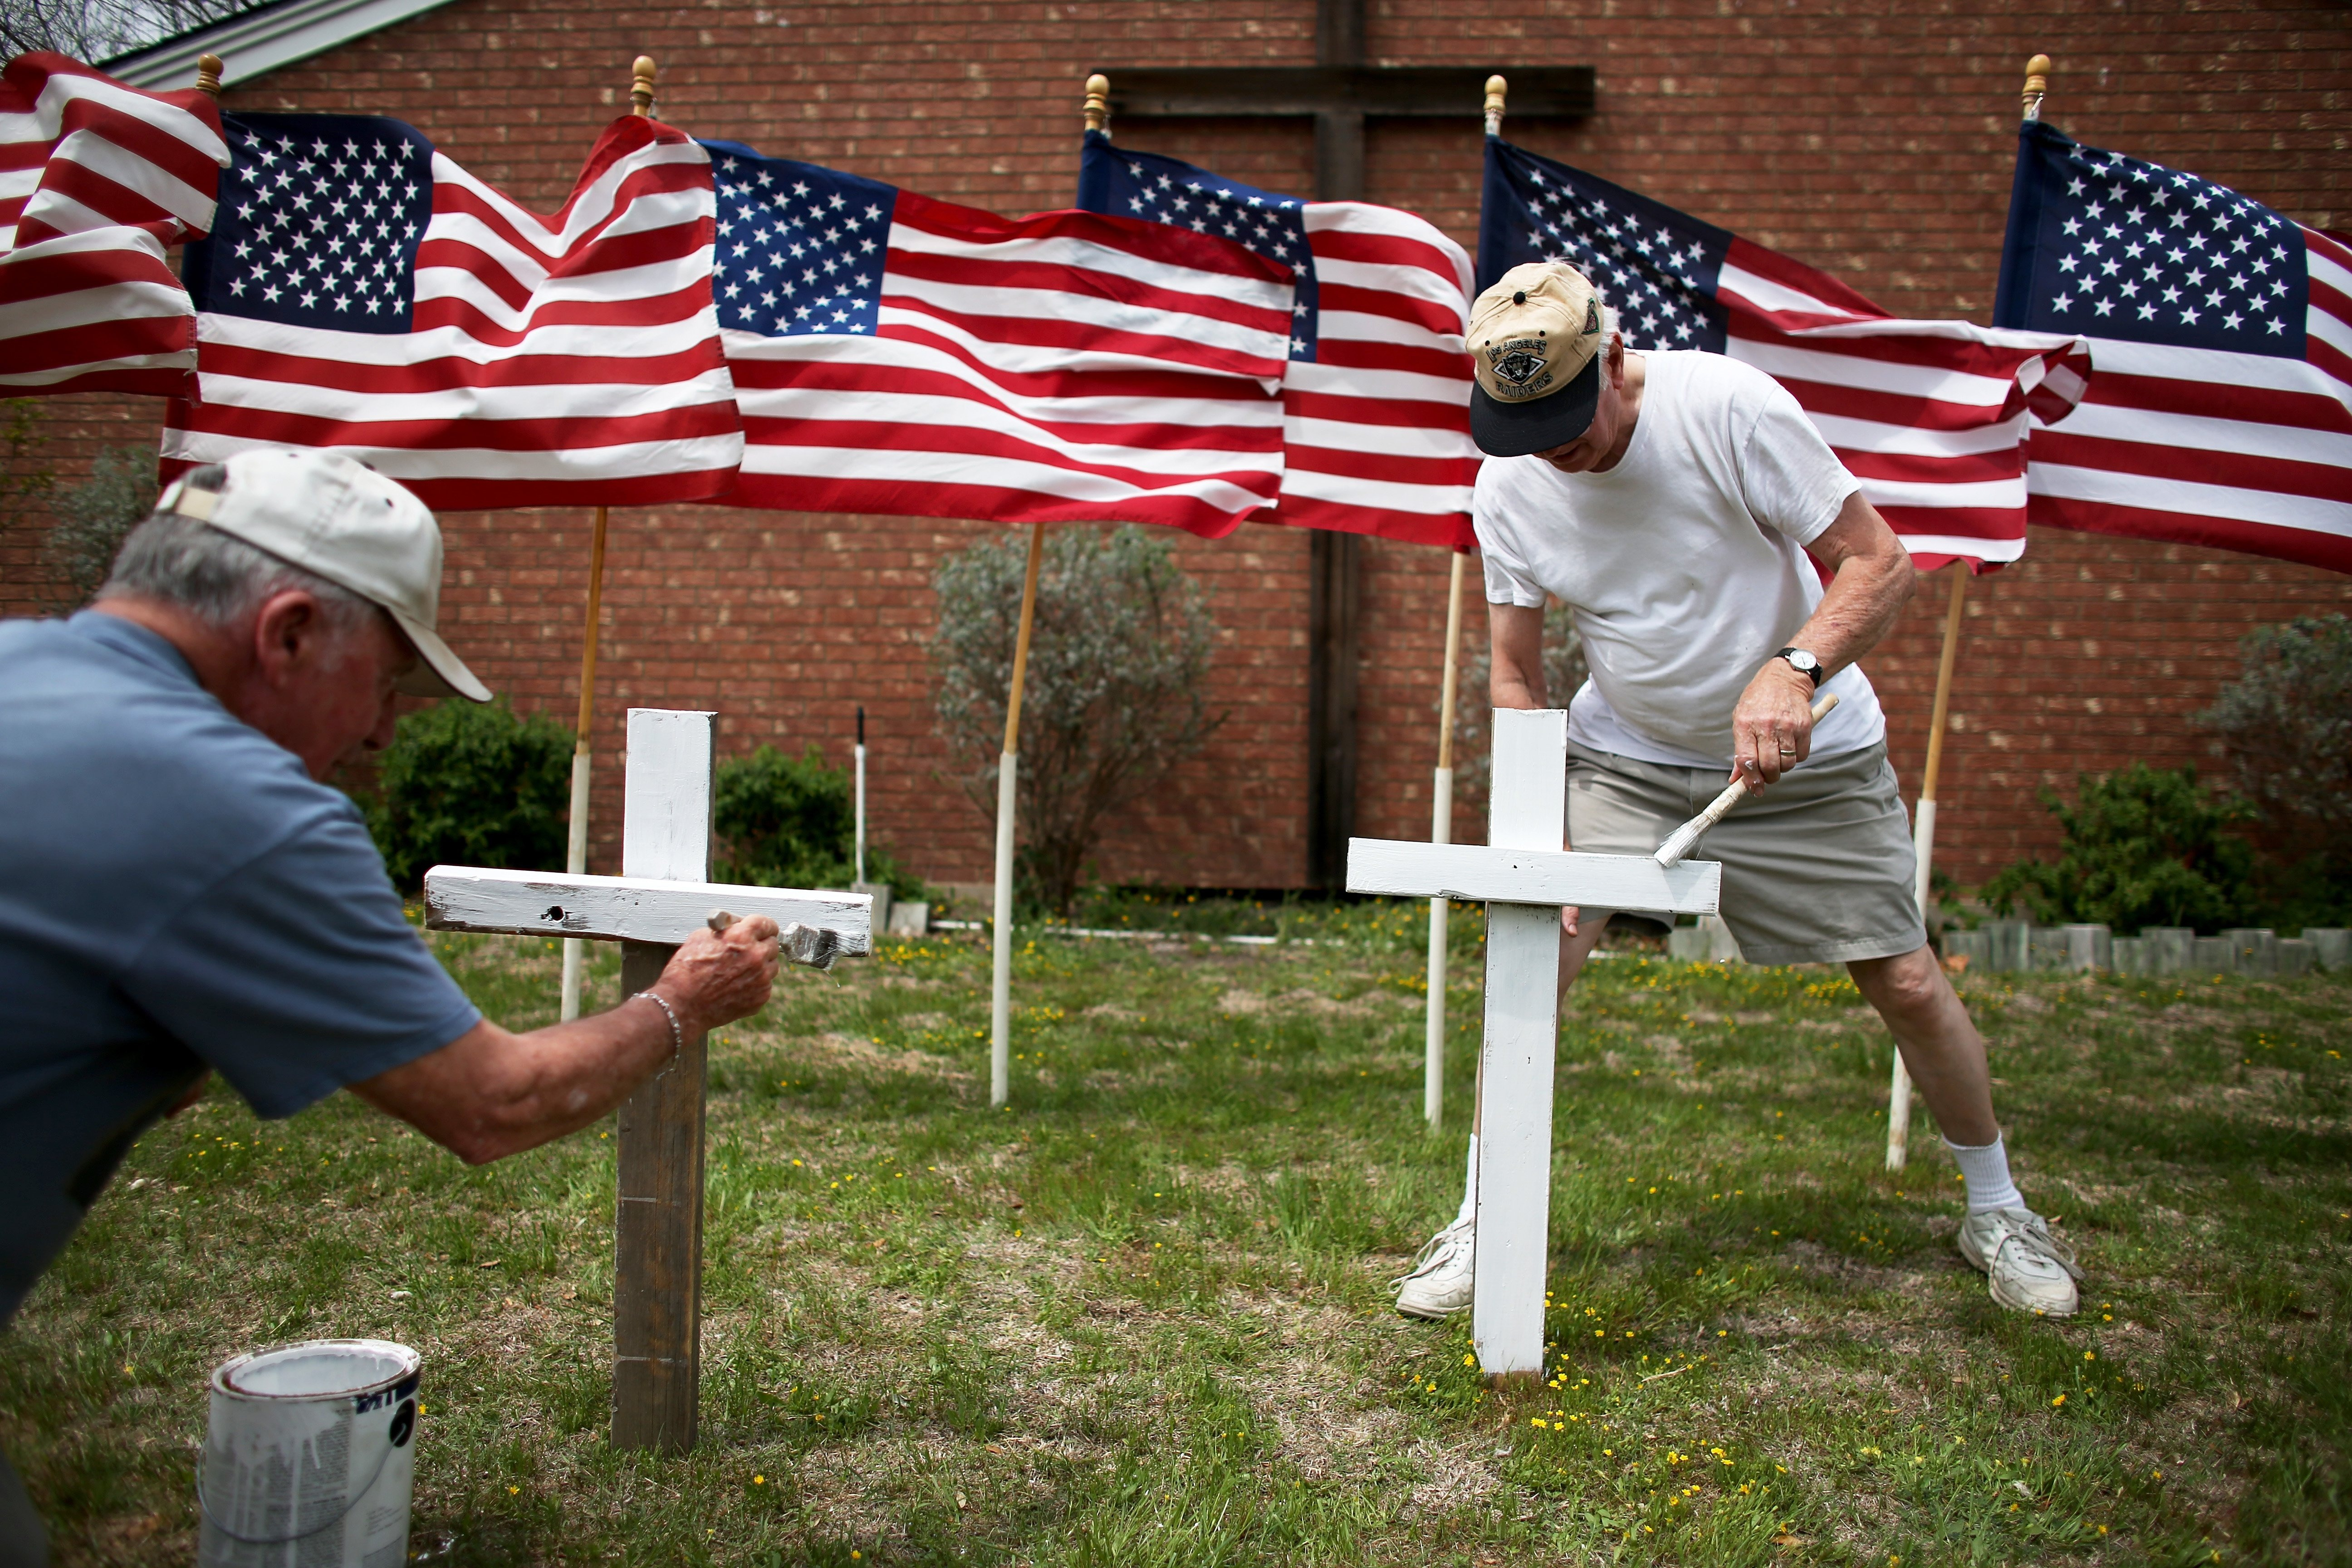 From left: Bob Gordon and Bob Butler paint crosses they placed in front of 16 American flags as they build a memorial in front of Central Christian Disciples of Christ church for the victims of yesterdays shooting at Fort Hood on April 3, 2014 in Killeen, Texas.